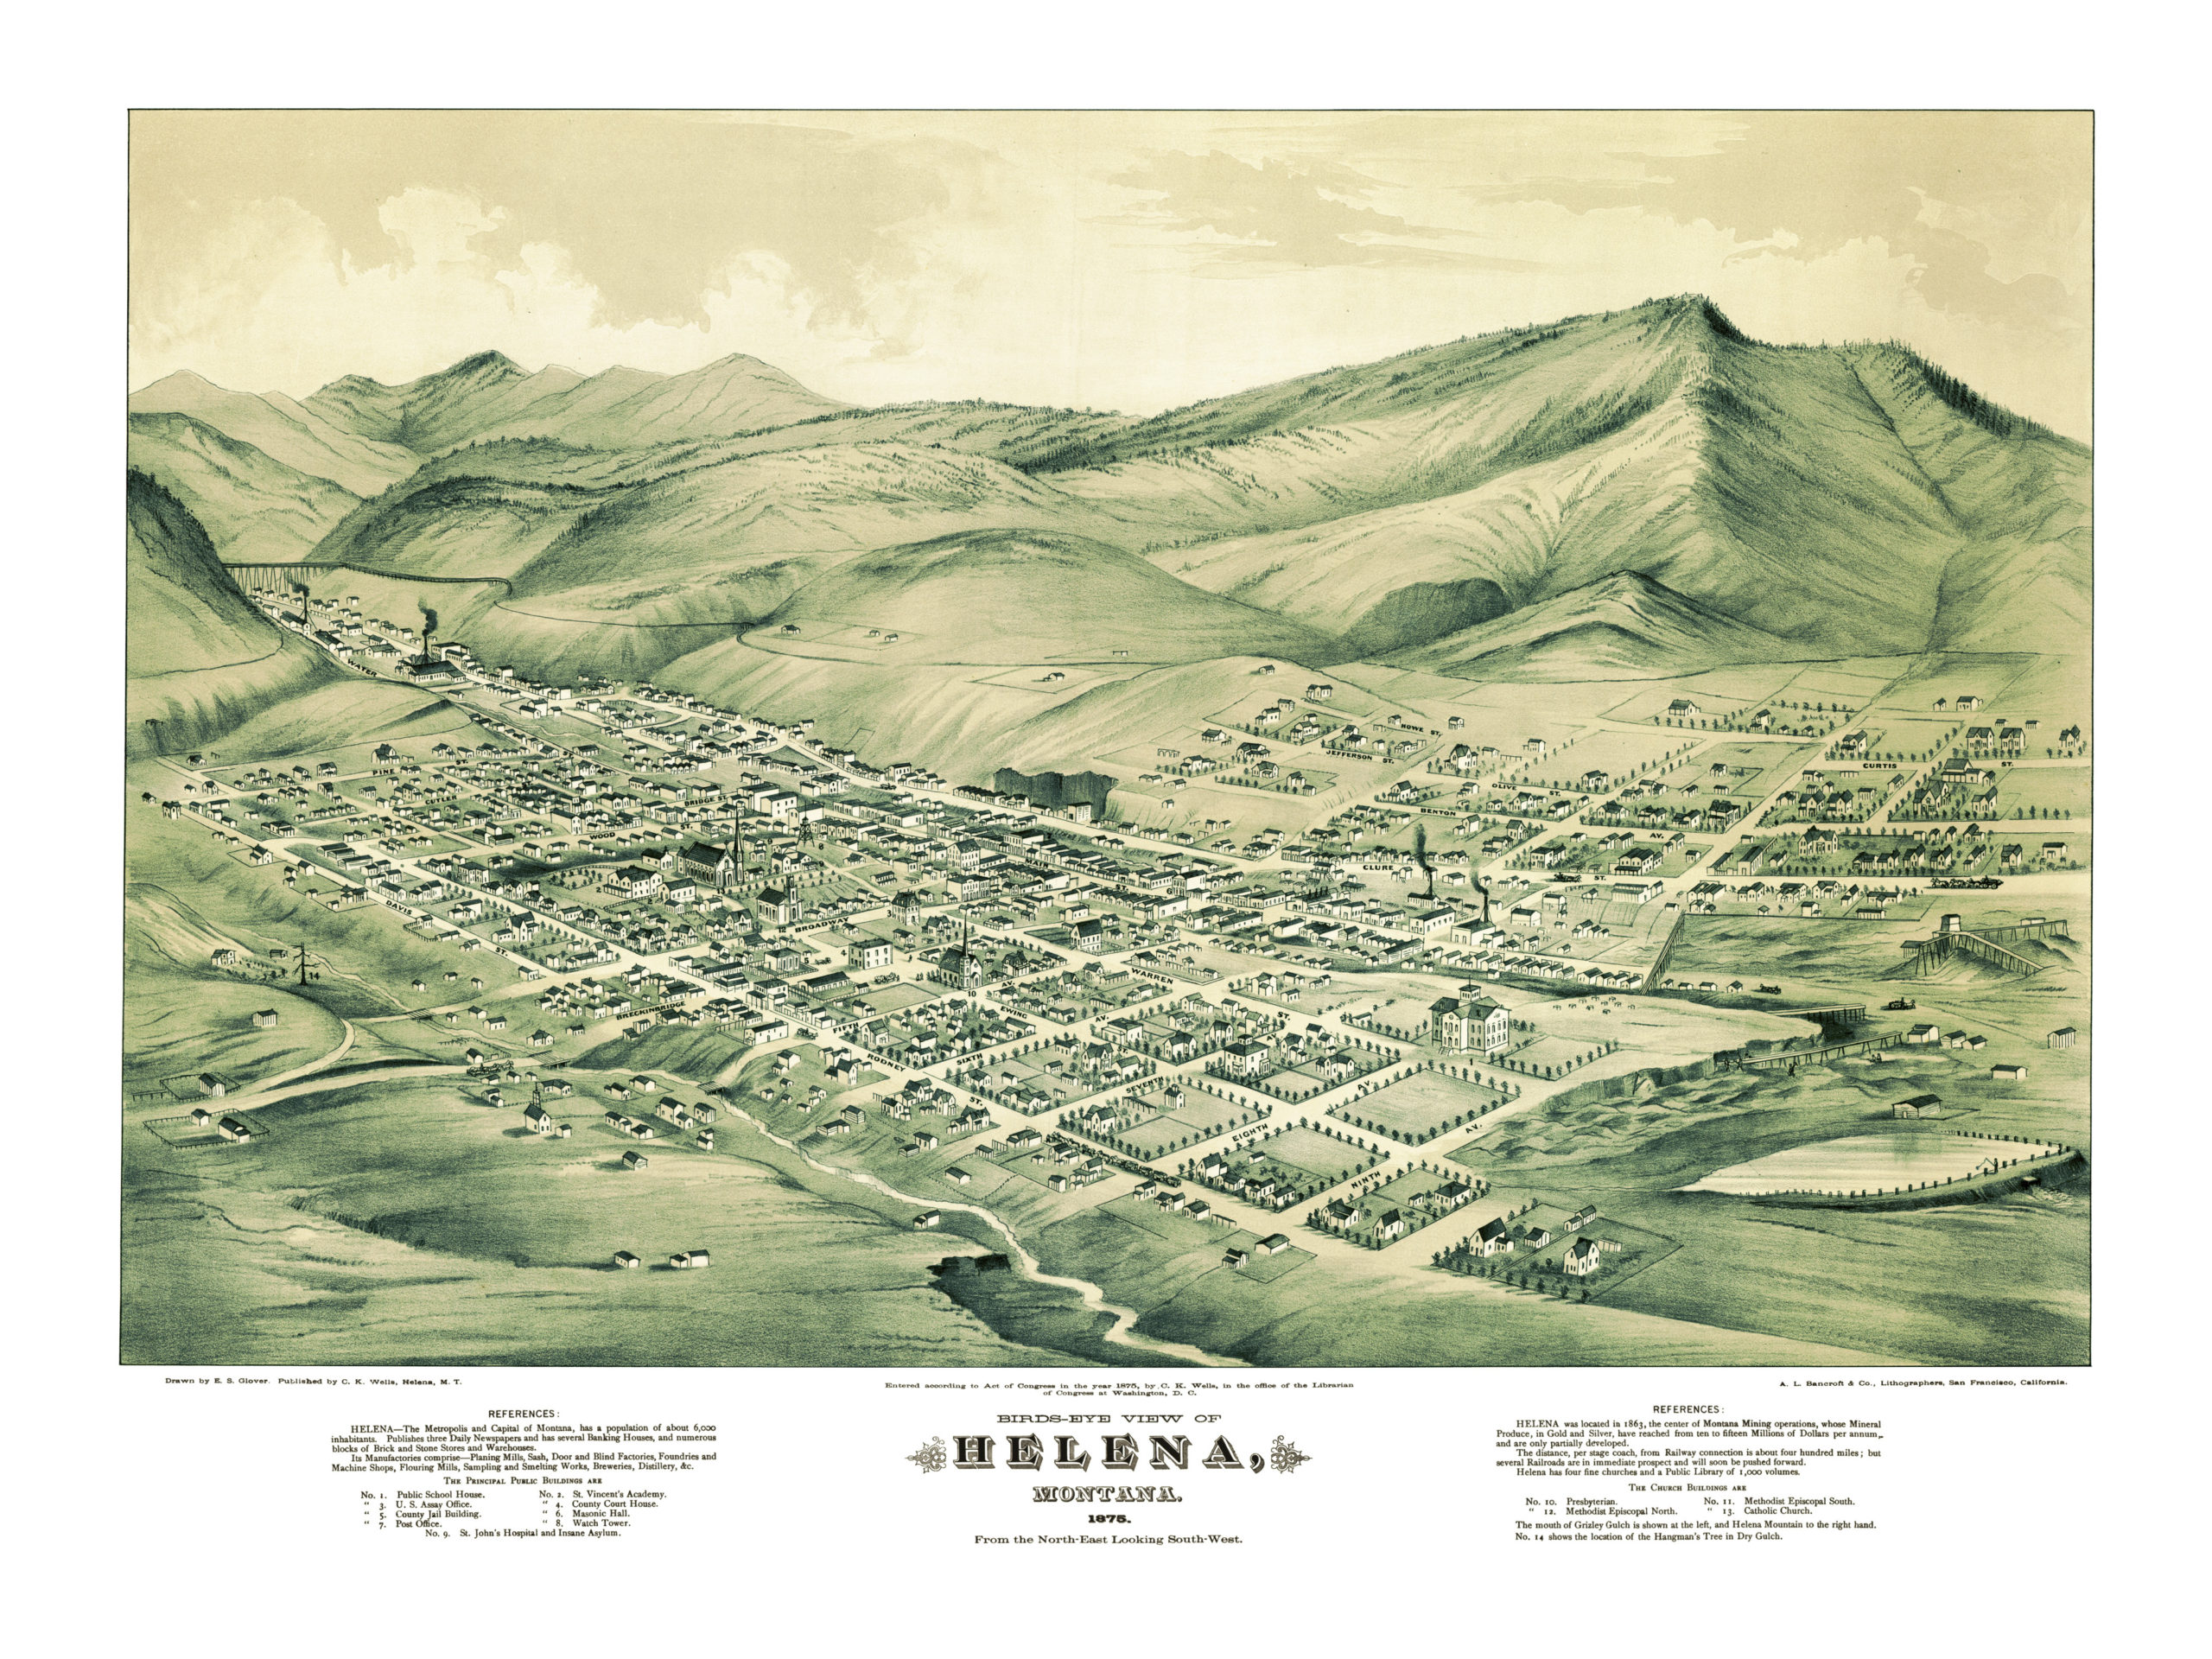 Beautifully restored map of Helena, Montana from 1875 - KNOWOL